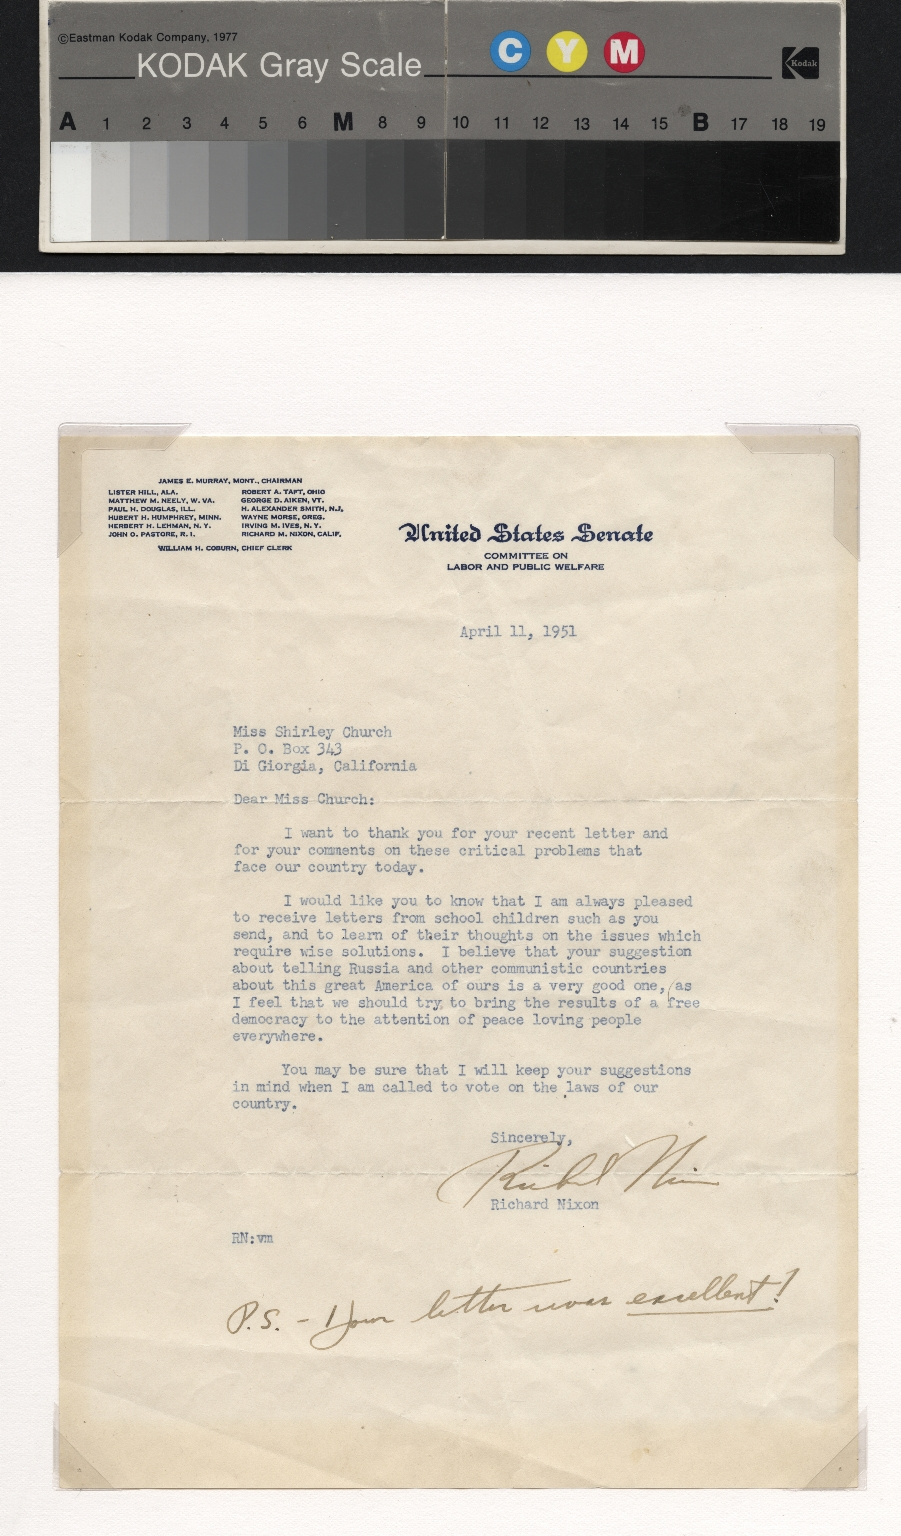 Richard Nixon letter to Shirley Church